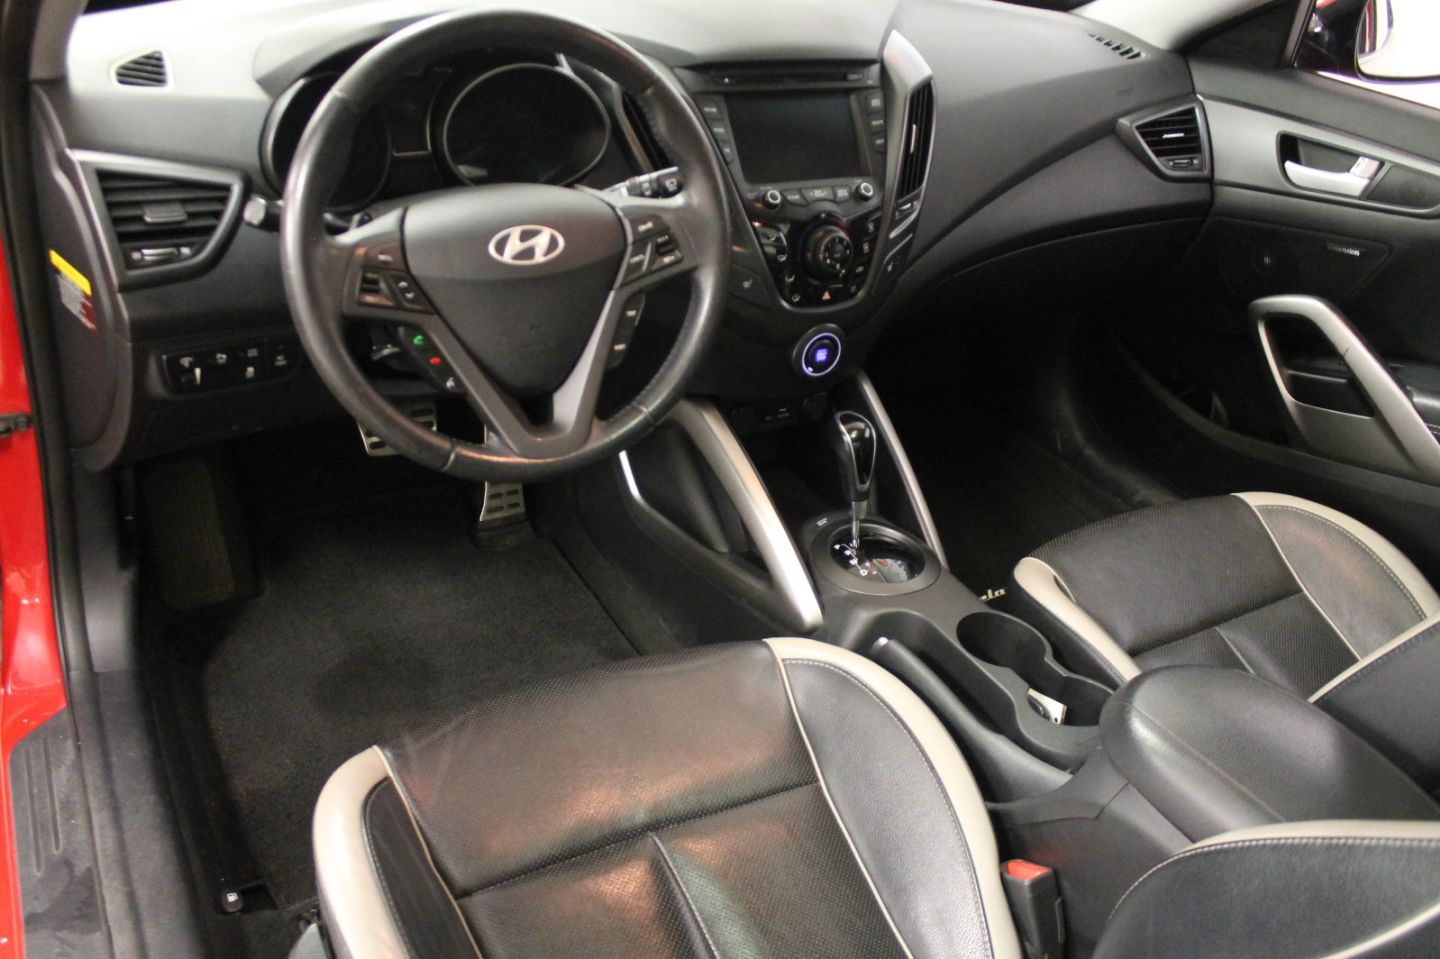 2013 Hyundai Veloster Turbo for sale in Edmonton, Alberta